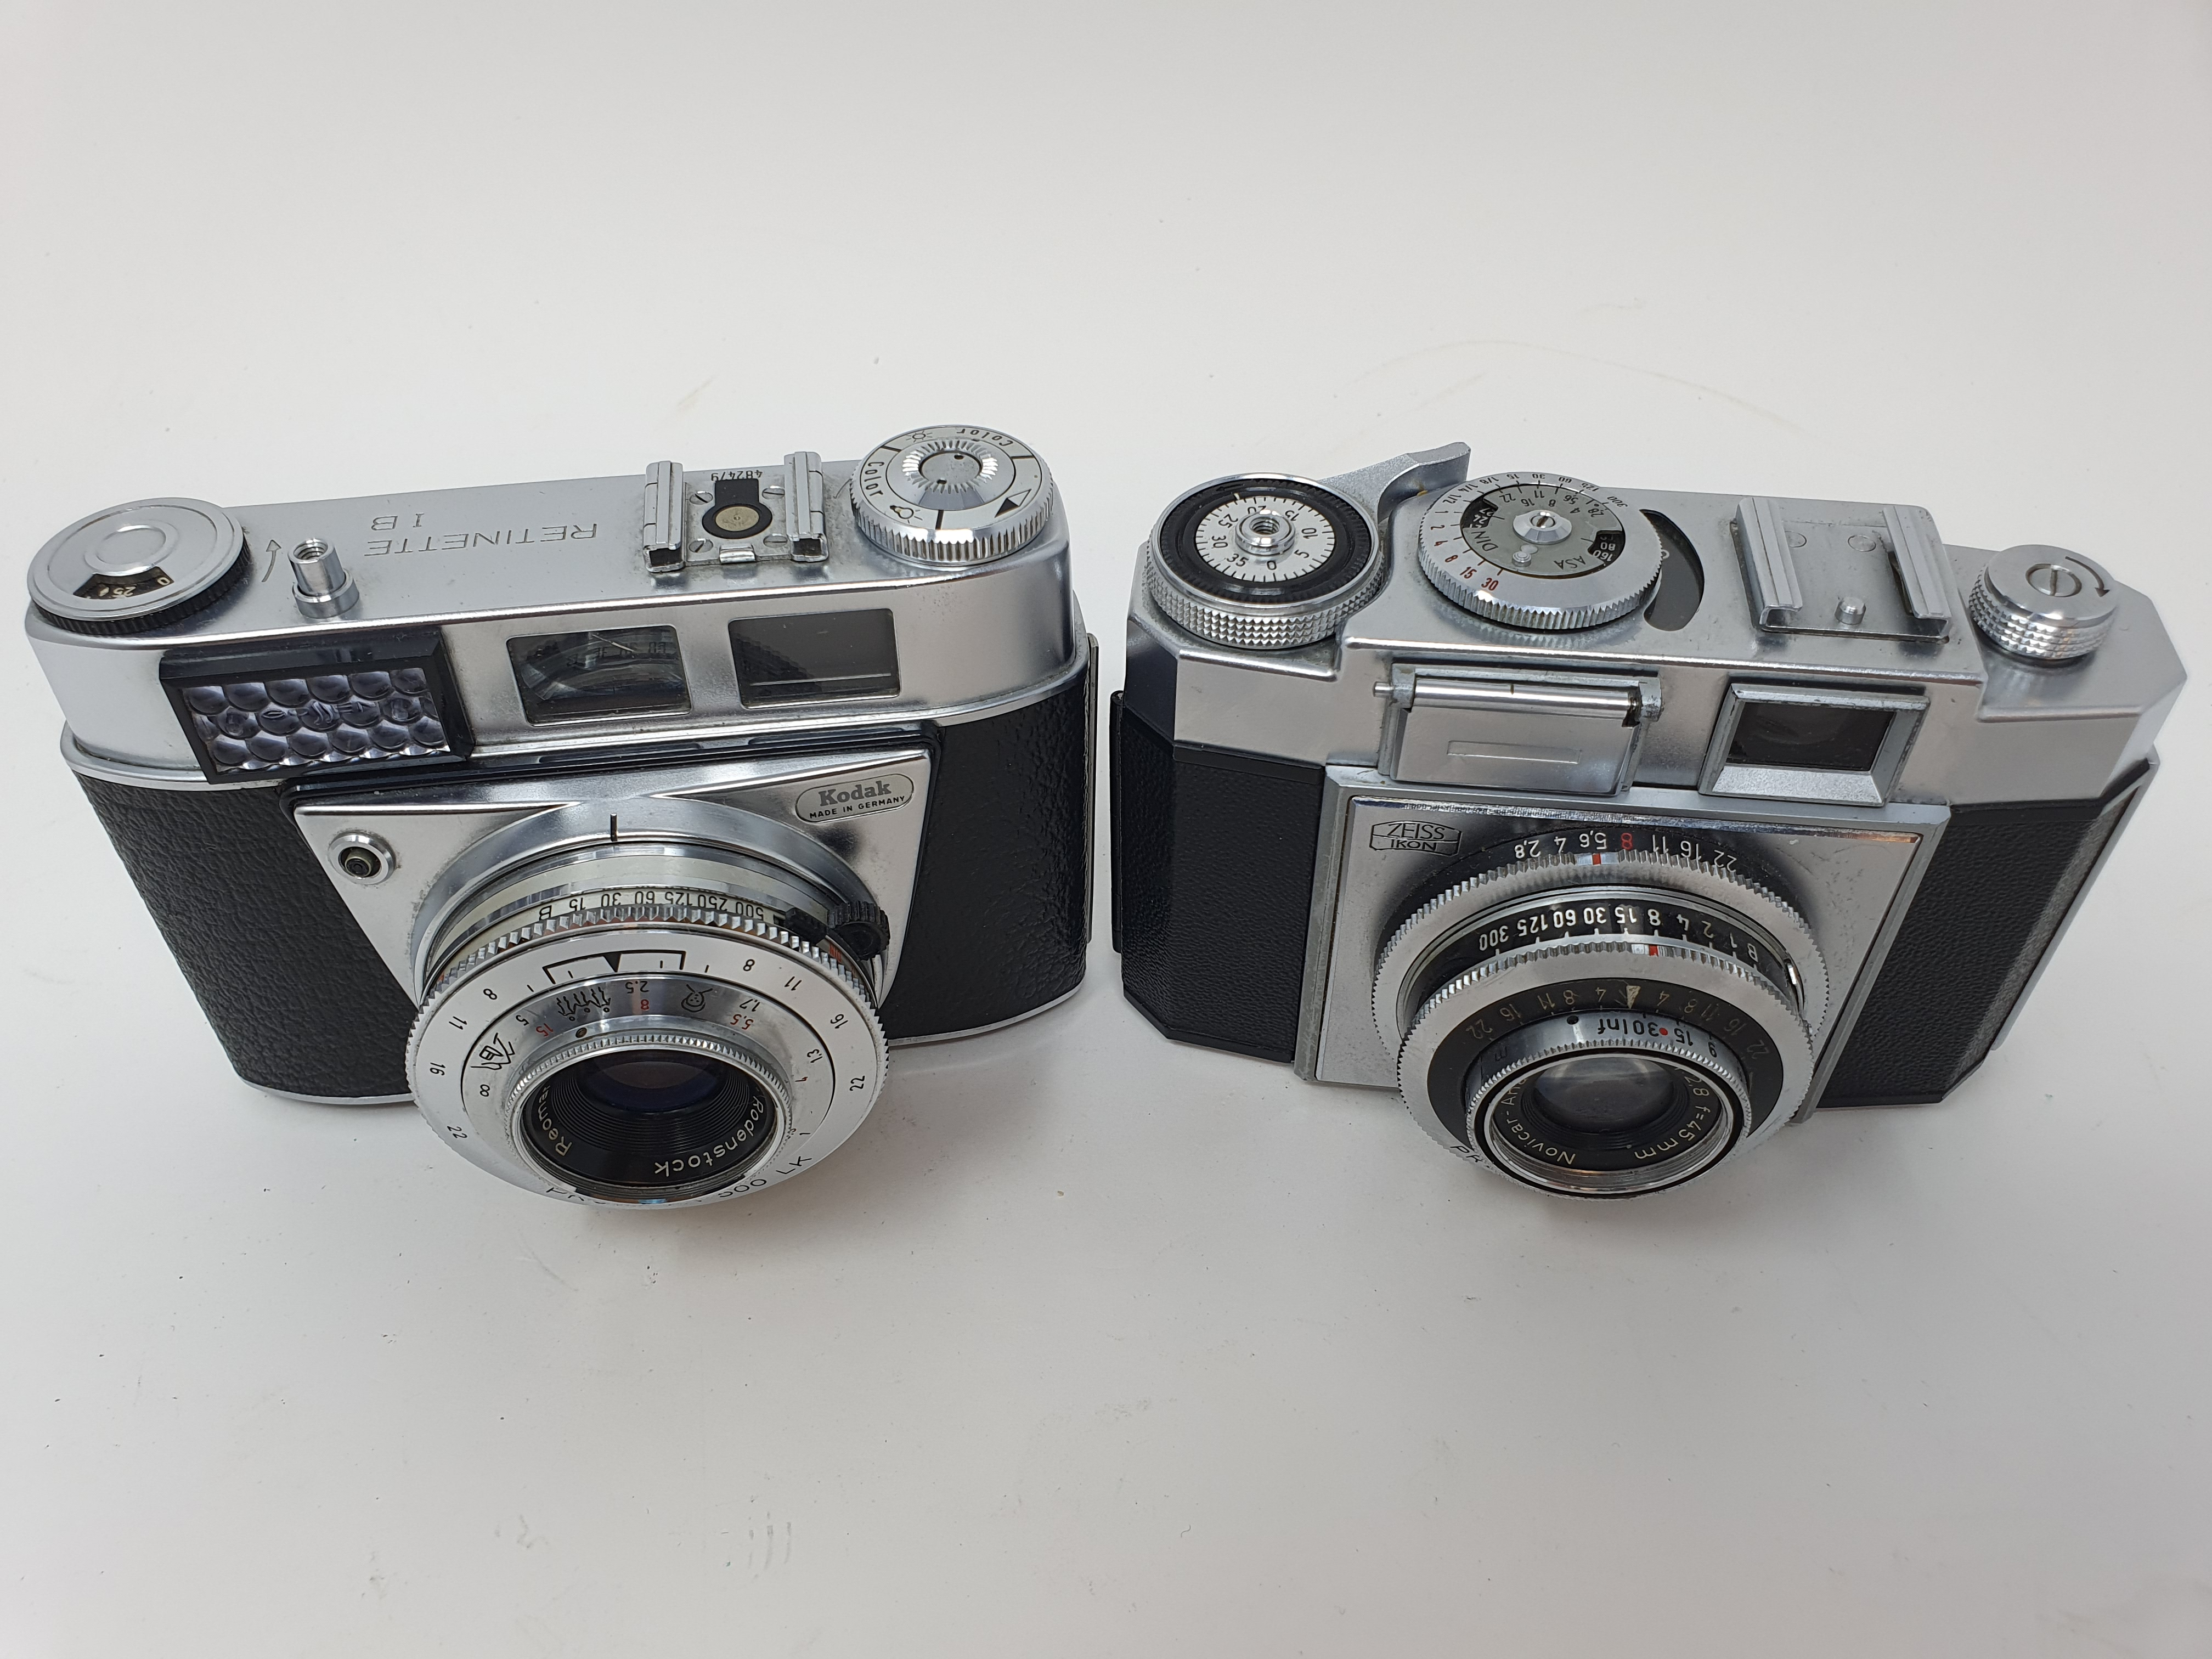 A Kodak Retinette 1 B camera and a Zeiss Ikon camera (2) Provenance: Part of a vast single owner - Image 2 of 4